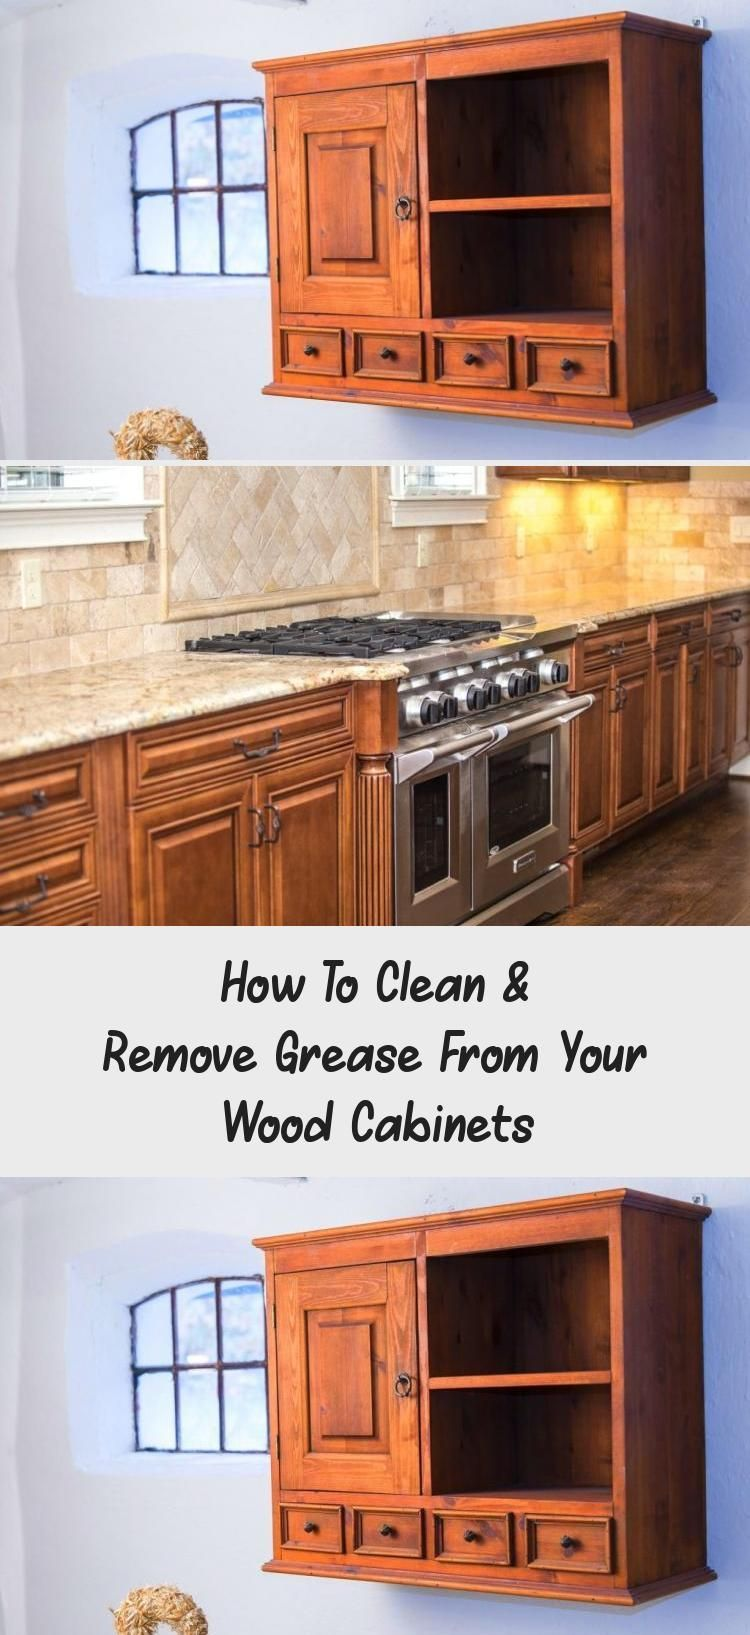 Newest Snap Shots How To Clean Remove Grease From Your Wood Cabinets Ktchn Strategies Trick 1 Clea In 2020 Clean Kitchen Cabinets Wood Cabinets Clean Kitchen